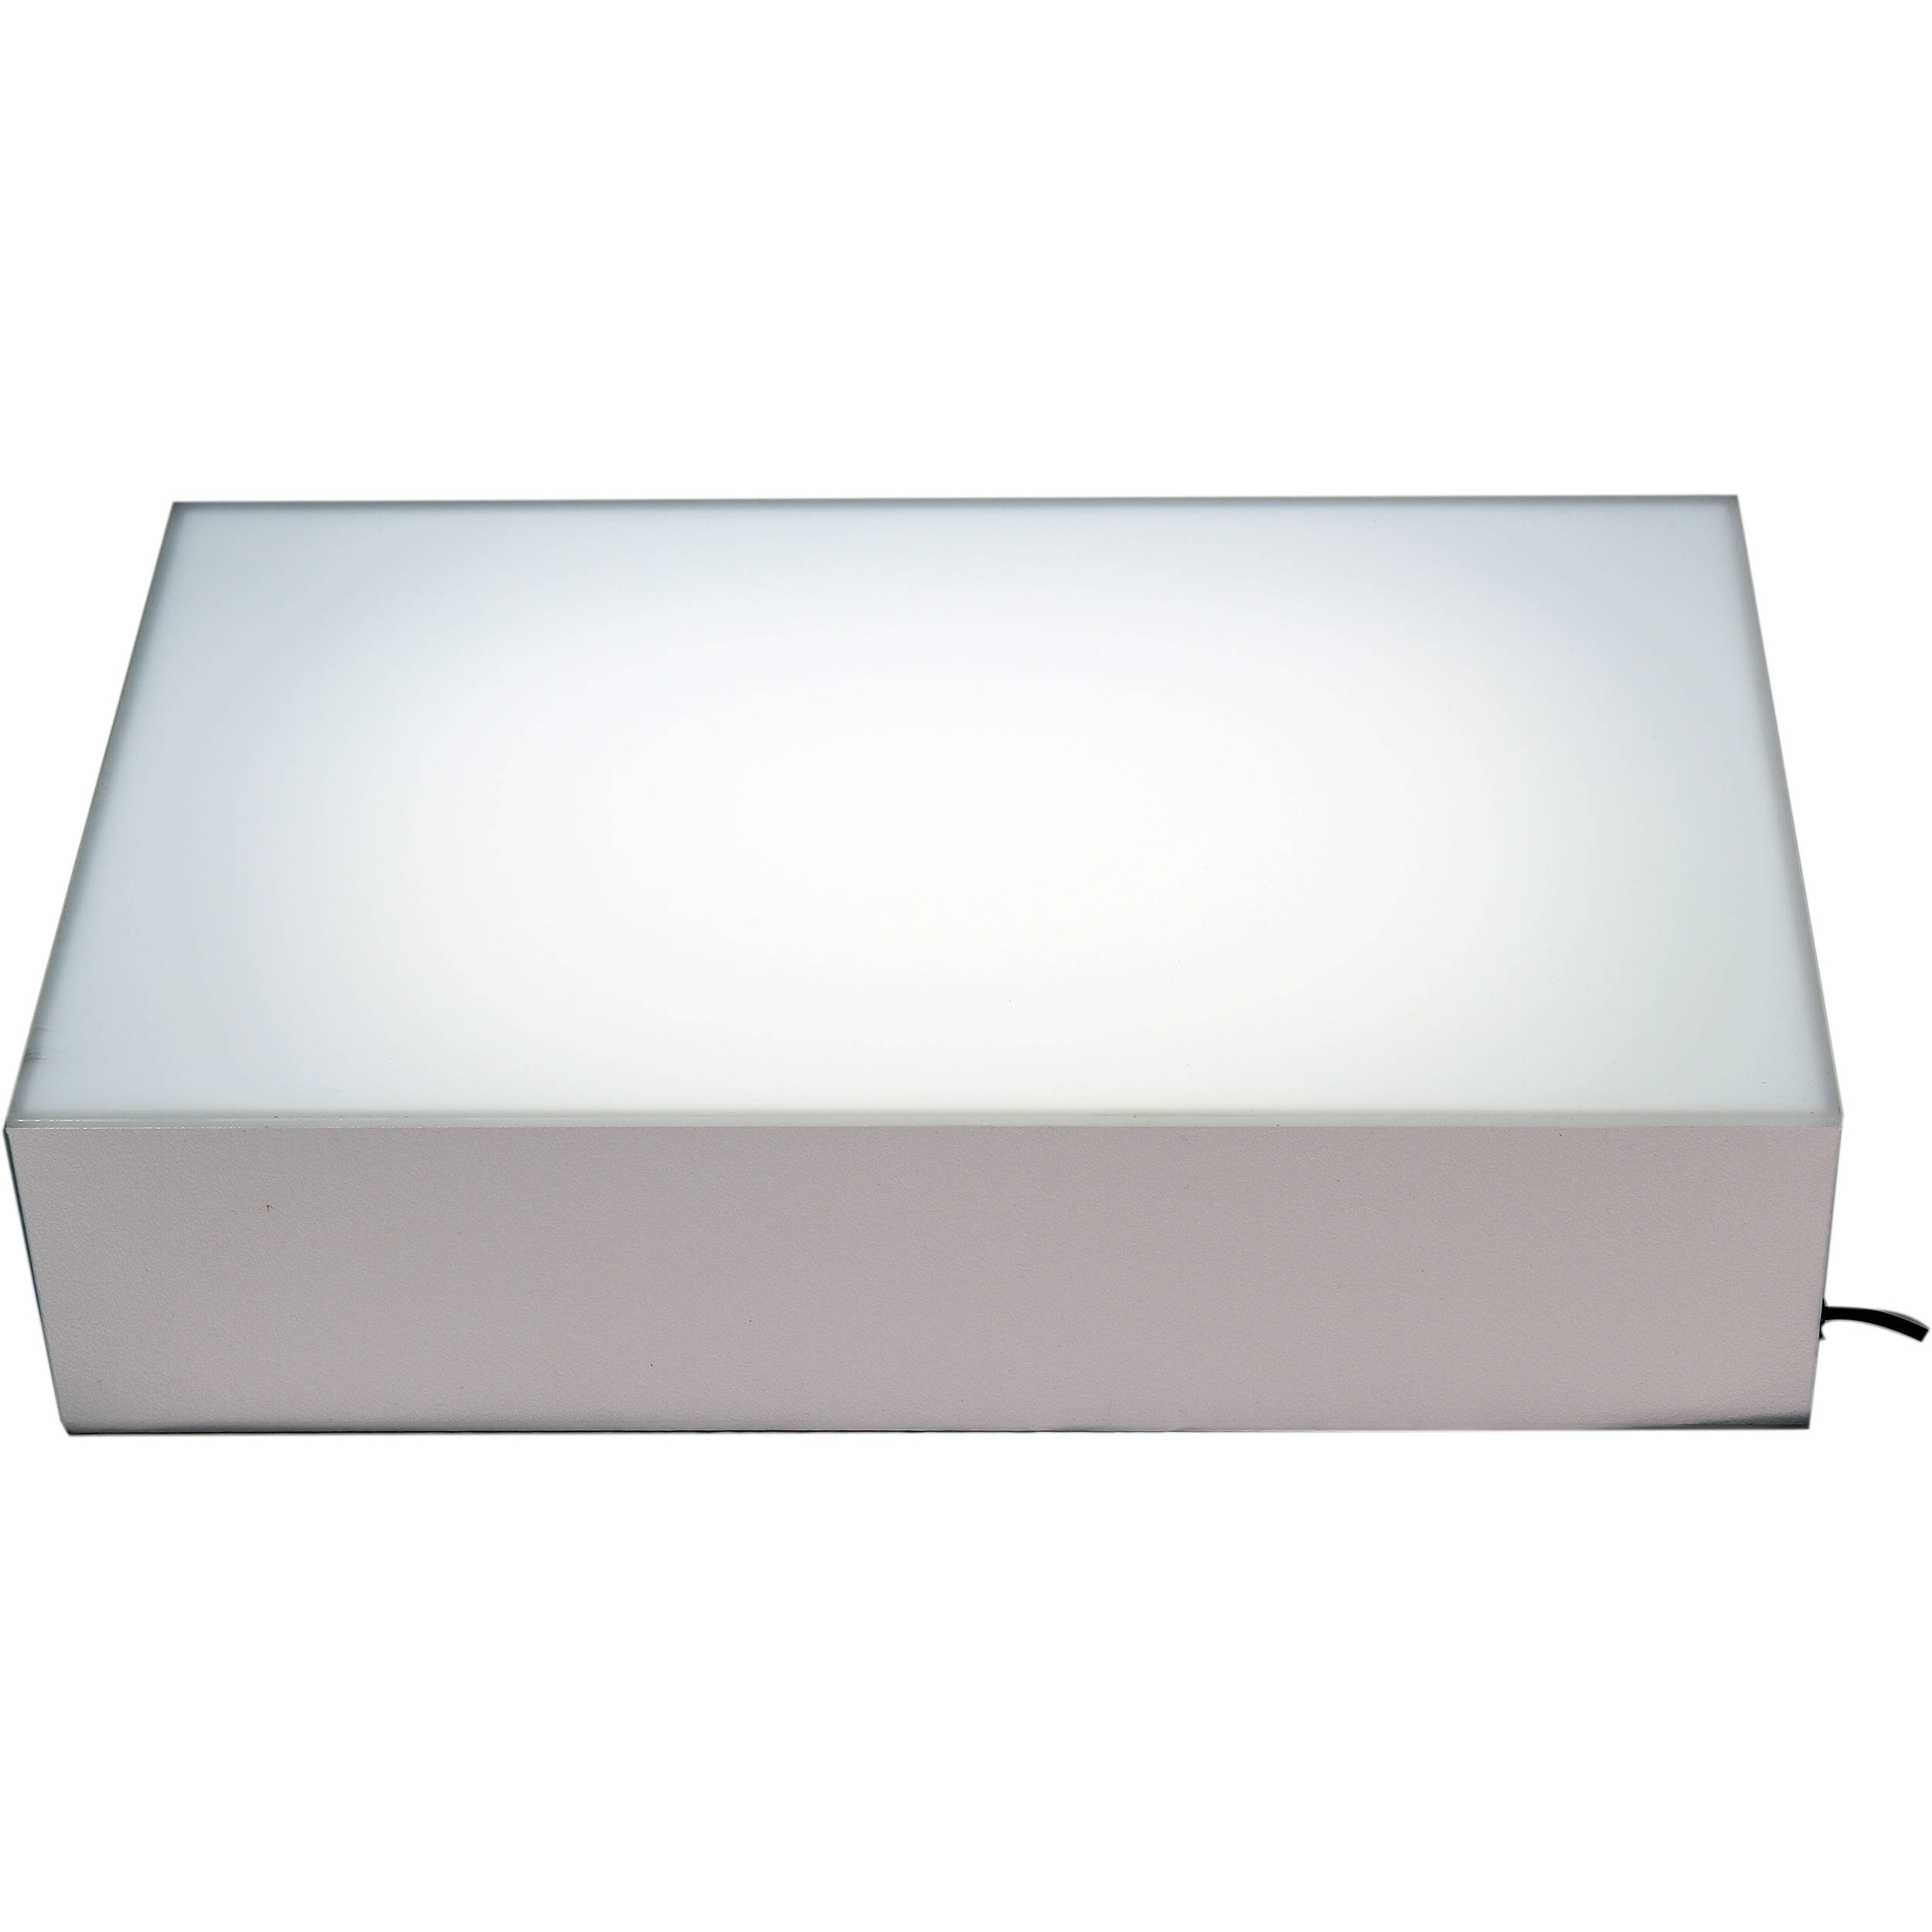 porta trace gagne 24x36 led abs plastic light box white